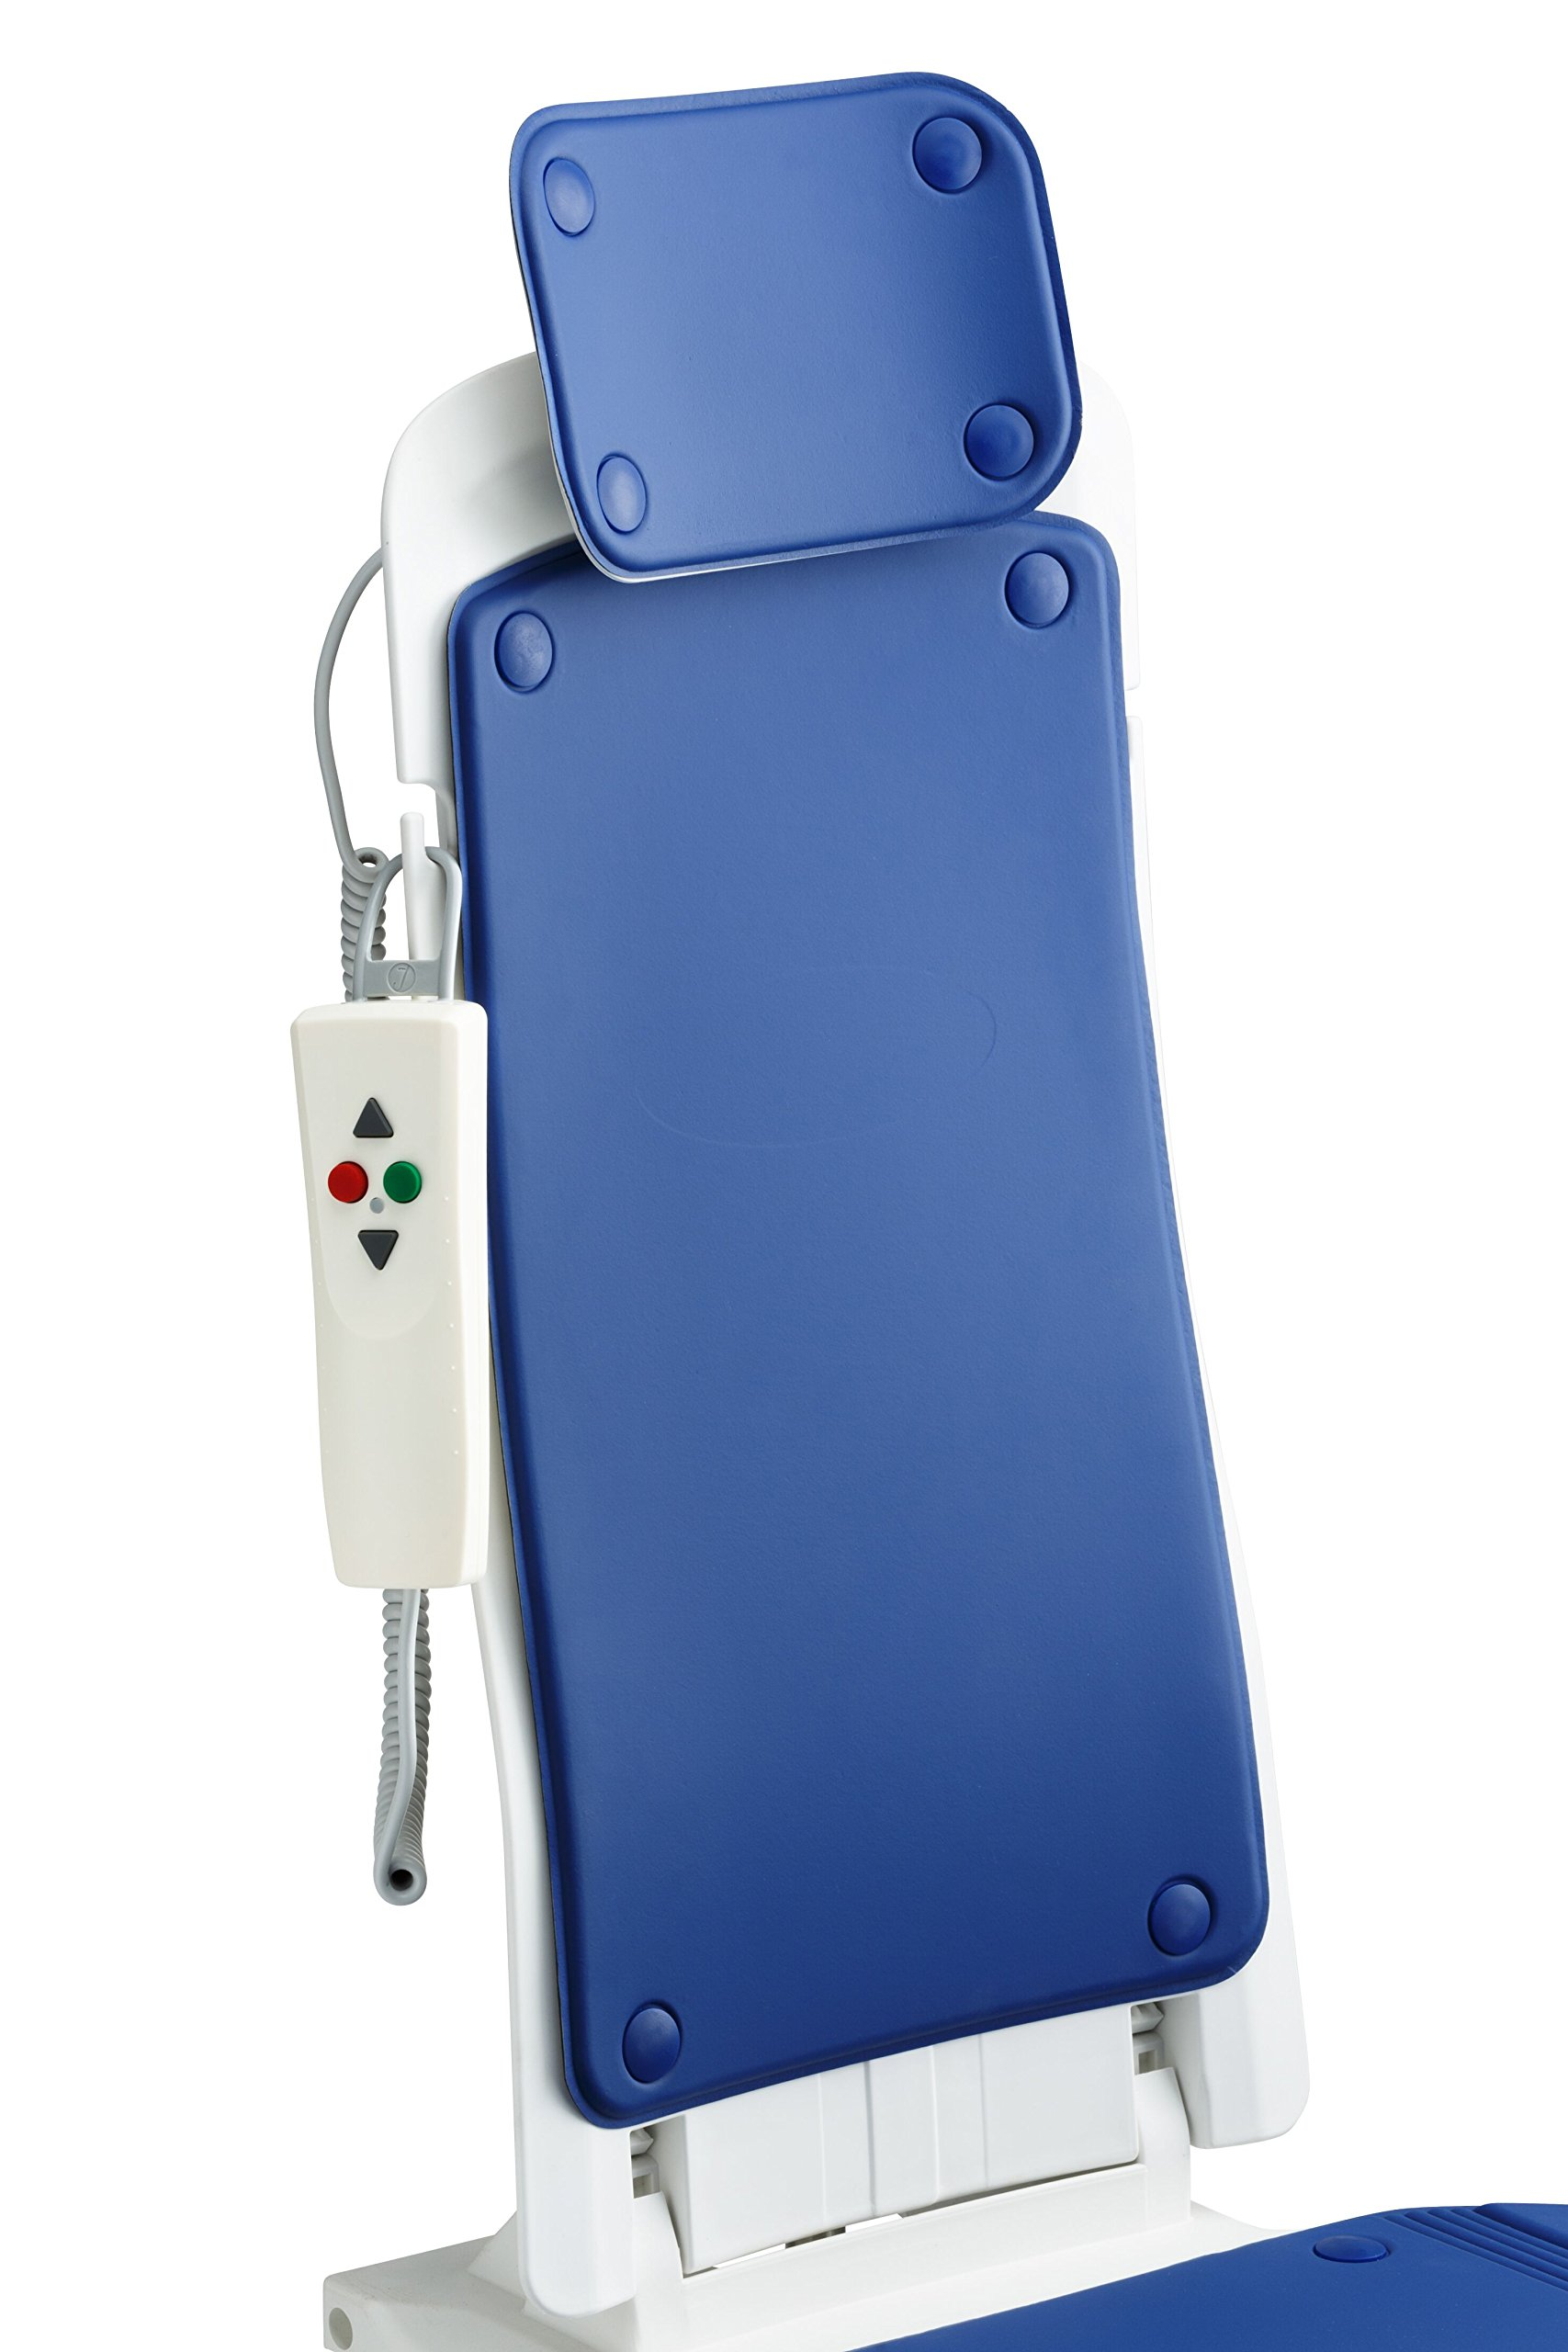 AdirMed Ultra Quiet Automatic (Battery Powered) Bath Lift Chair by AdirMed (Image #3)